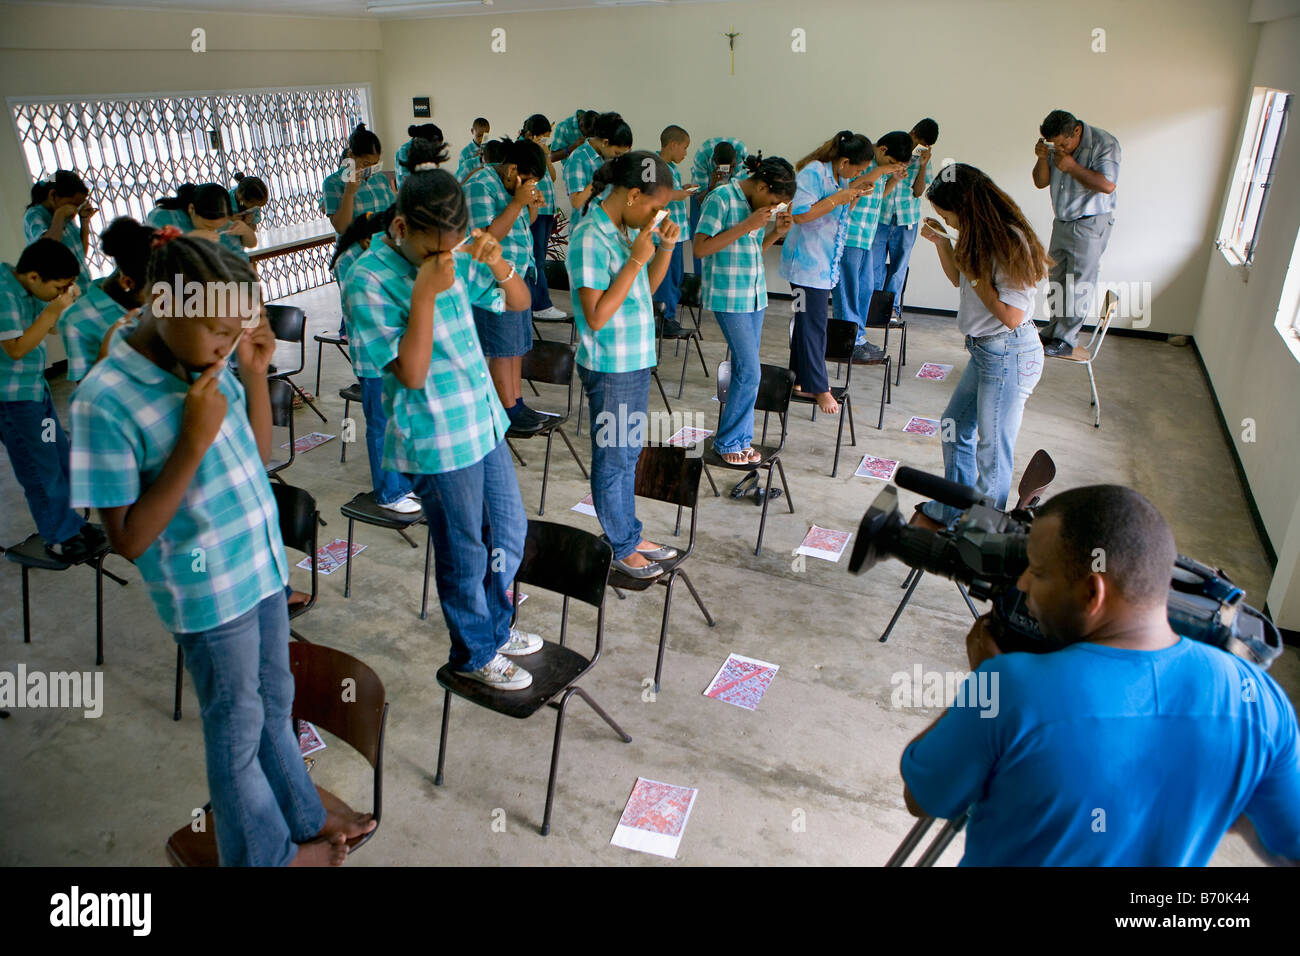 Suriname, Paramaribo, Cartography, Children learning at school about aerial photography. - Stock Image